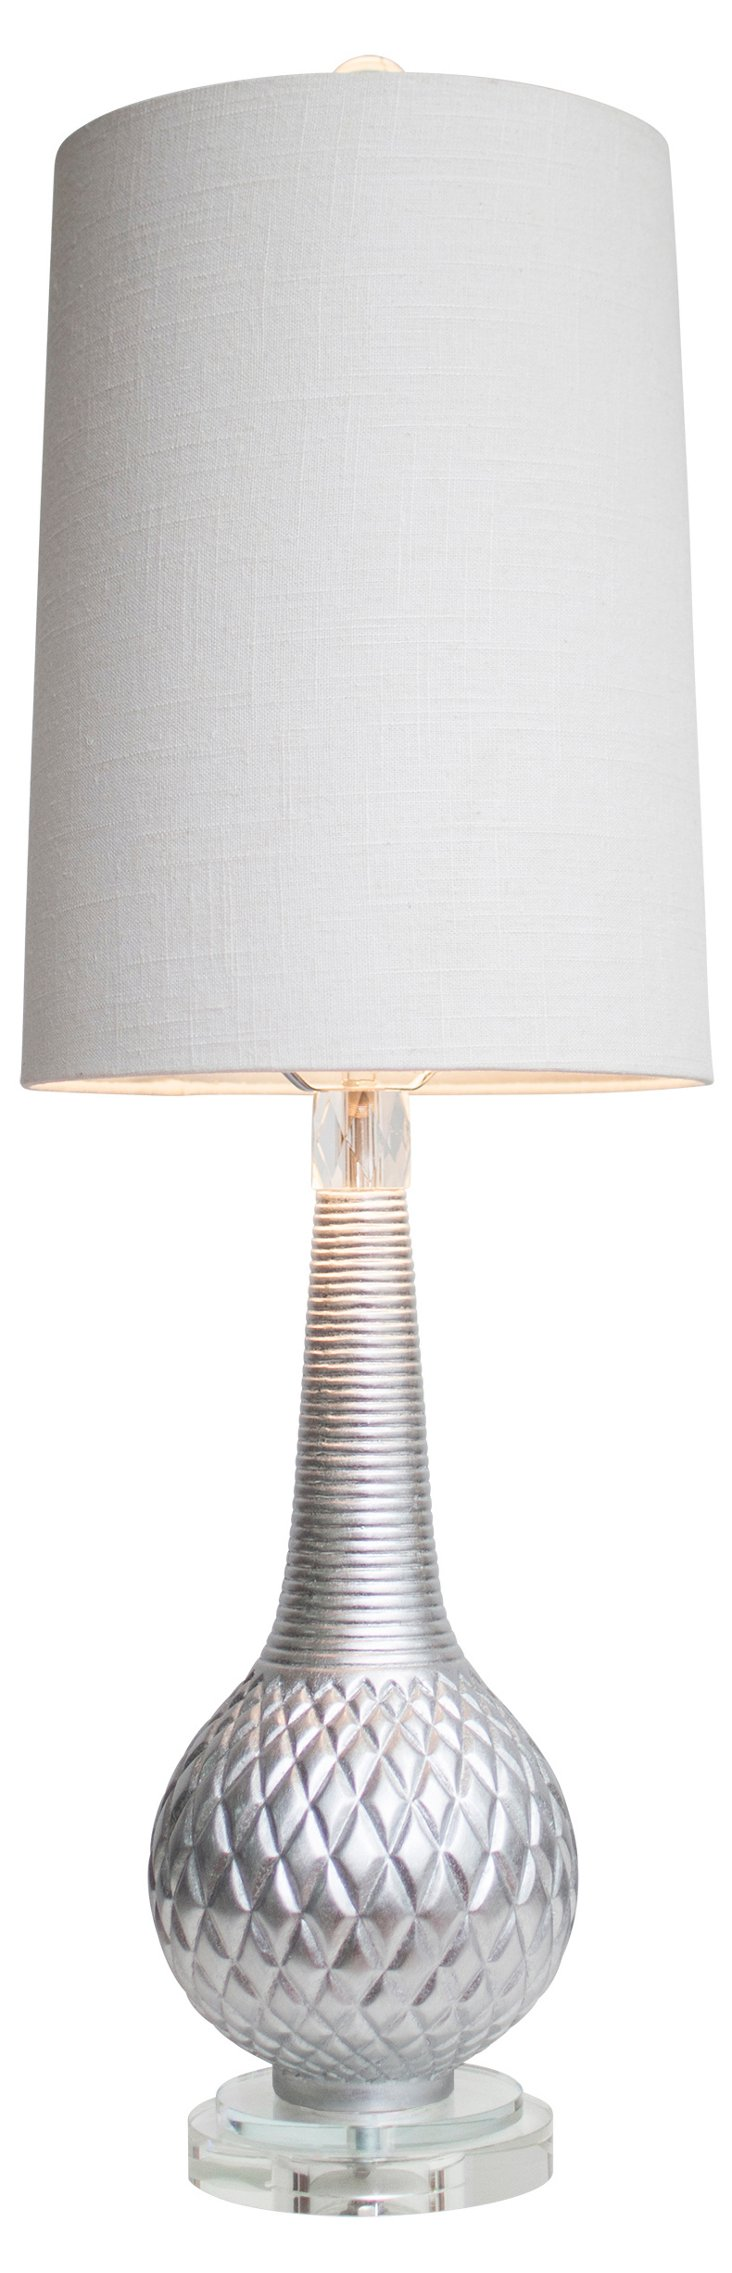 Knight Table Lamp, Lacquered Silver